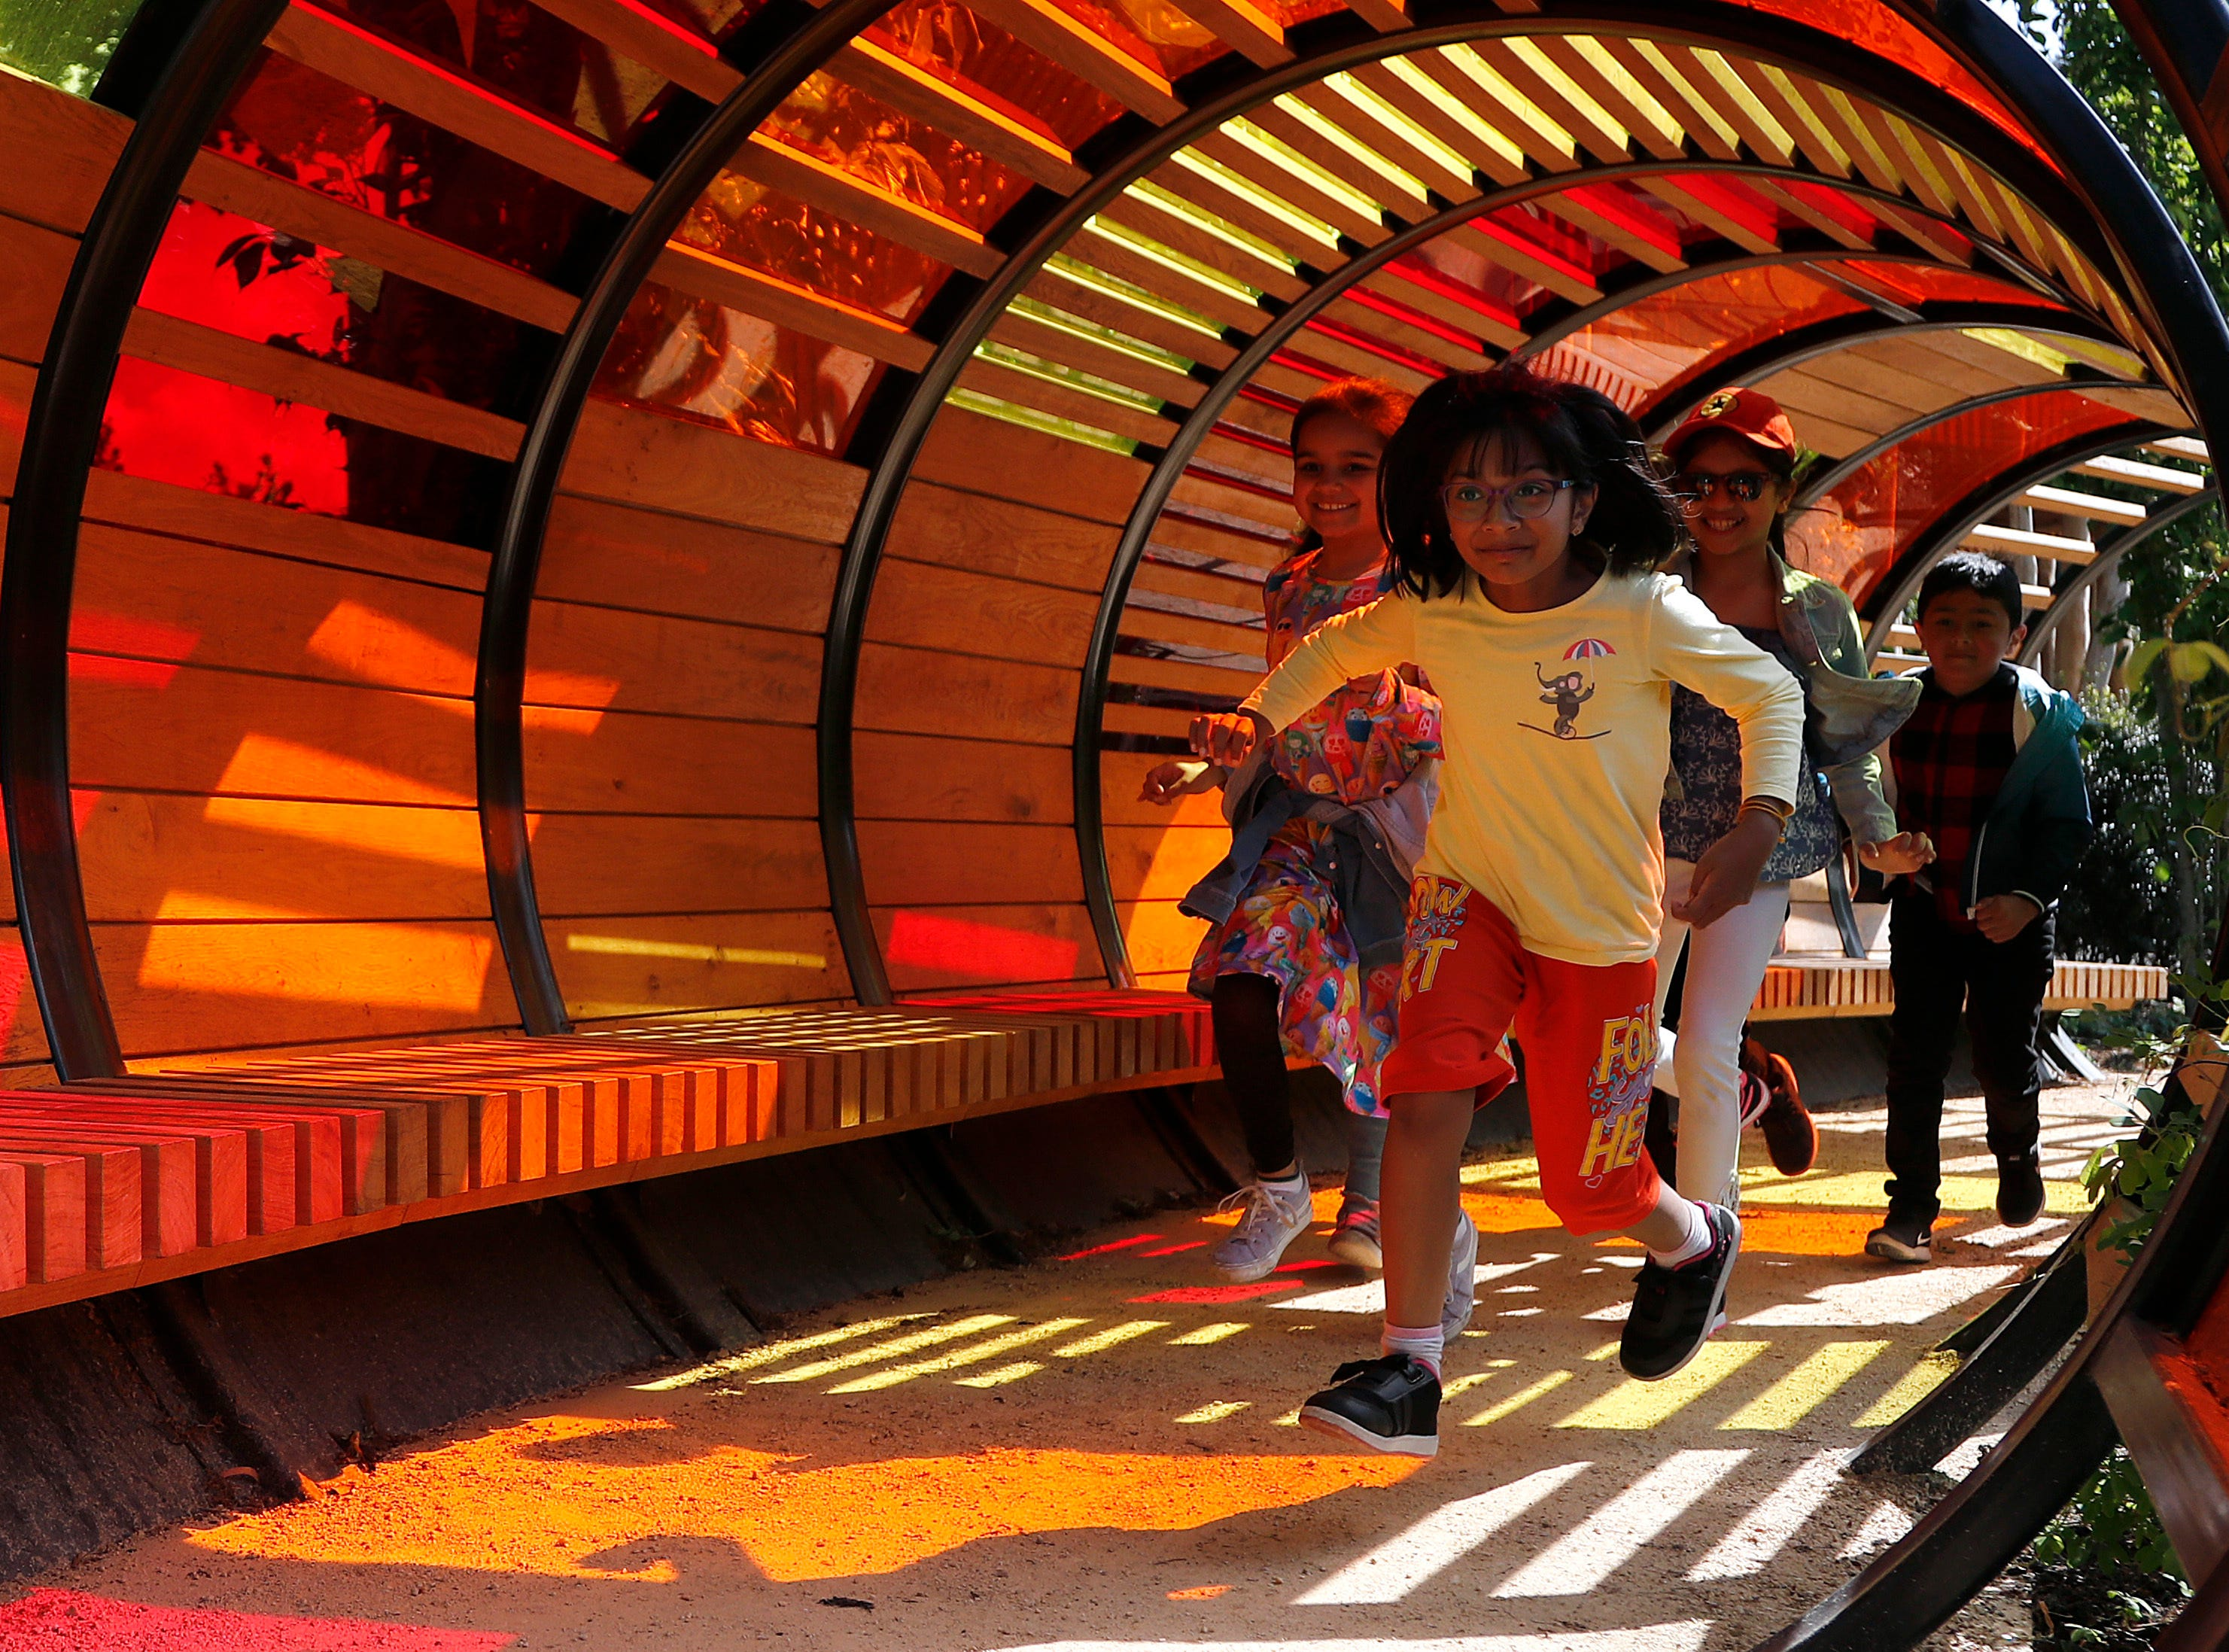 Children enjoy the light tunnel at the new Children's Garden at Kew, designed around the elements that plants need to grow, at Kew Gardens in London, Thursday, May 16, 2019. The new garden covers the equivalent of nearly 40 tennis courts, and is for youngsters to explore and play in.